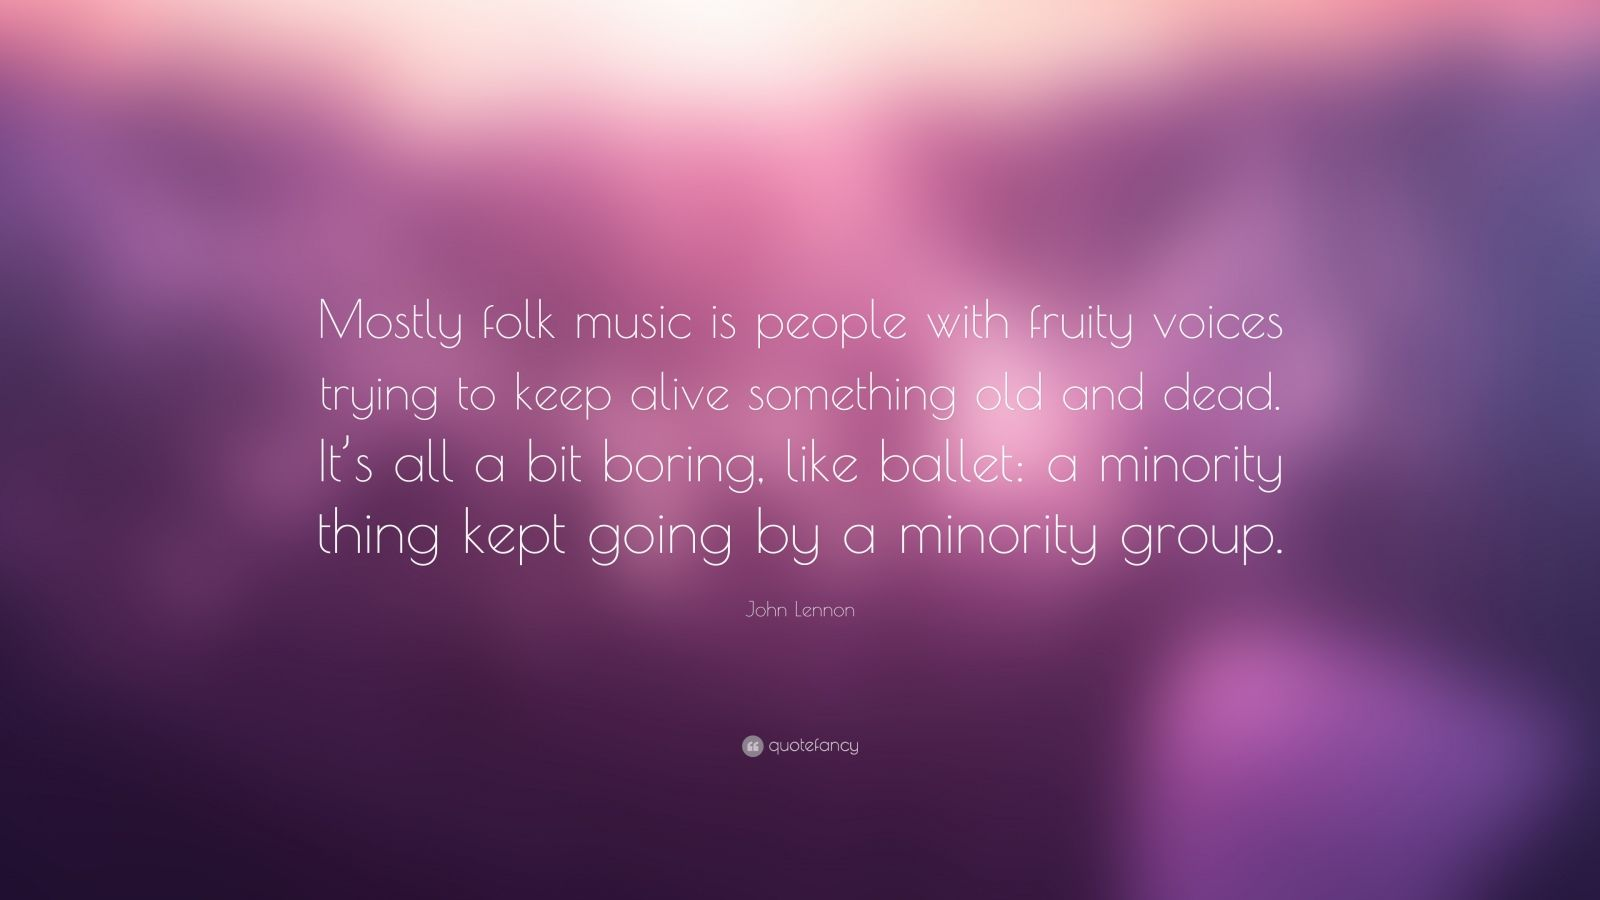 """John Lennon Quote: """"Mostly folk music is people with fruity voices trying to keep alive something old and dead. It's all a bit boring, like ballet: a minority thing kept going by a minority group."""""""